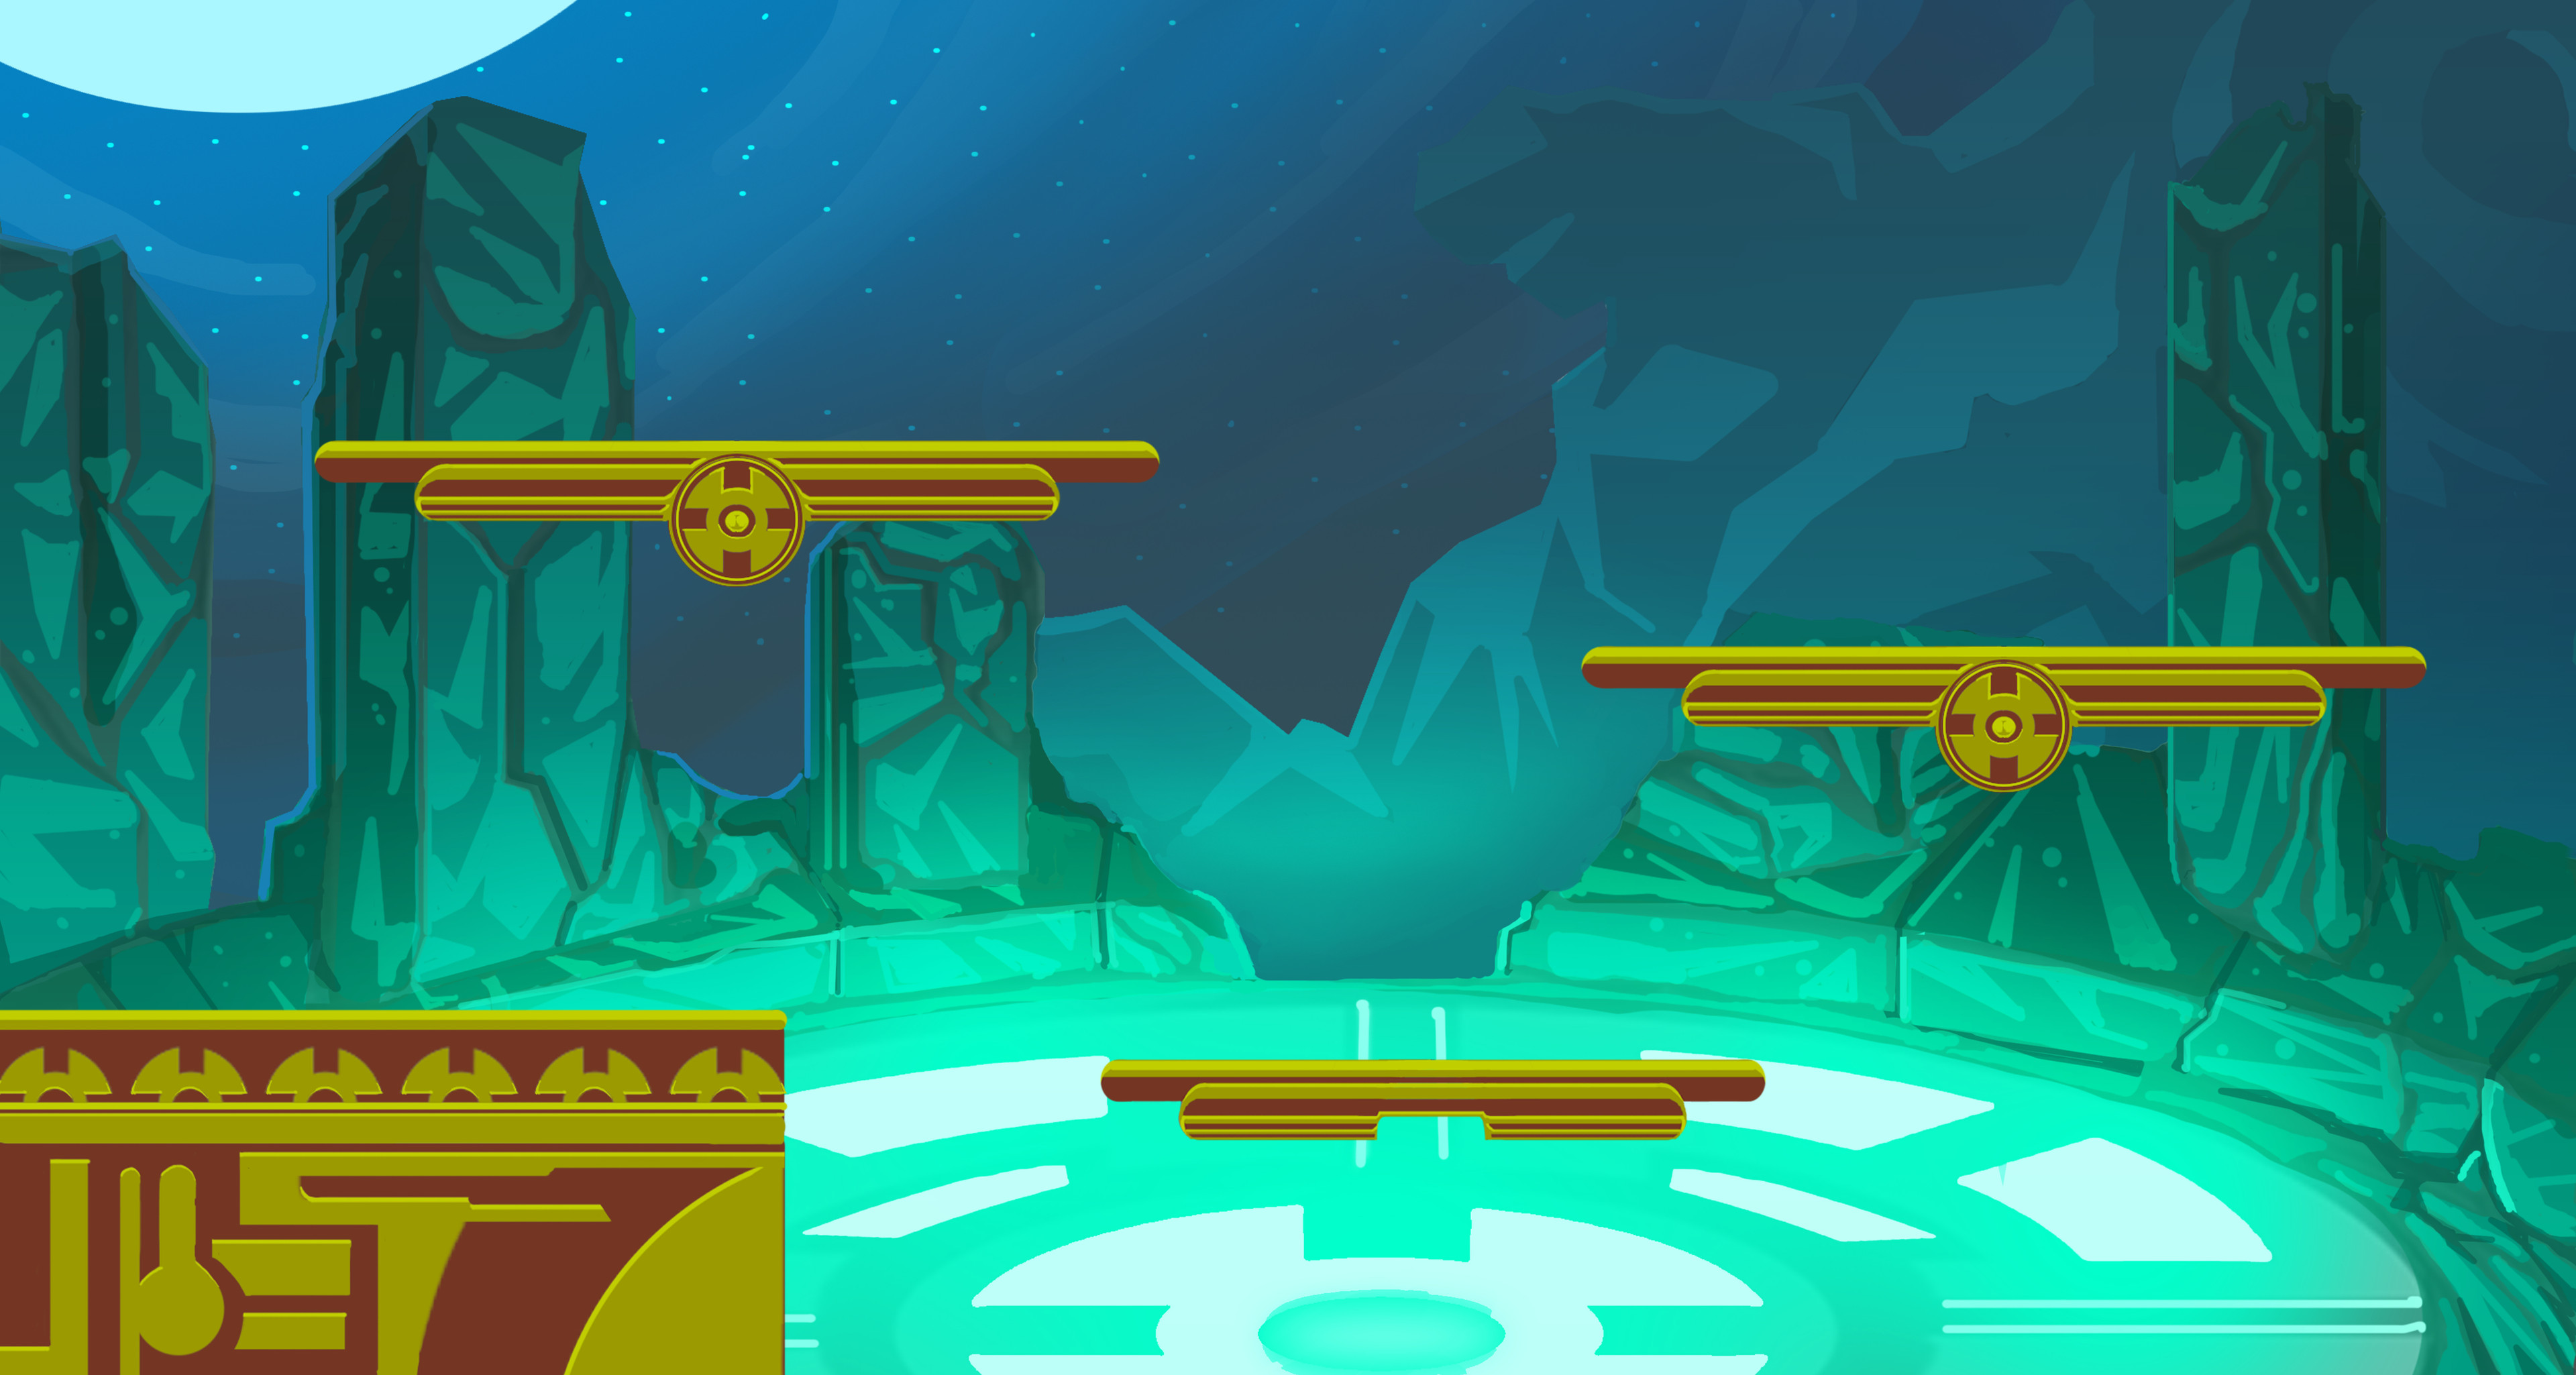 the character's level( fighting platform game)